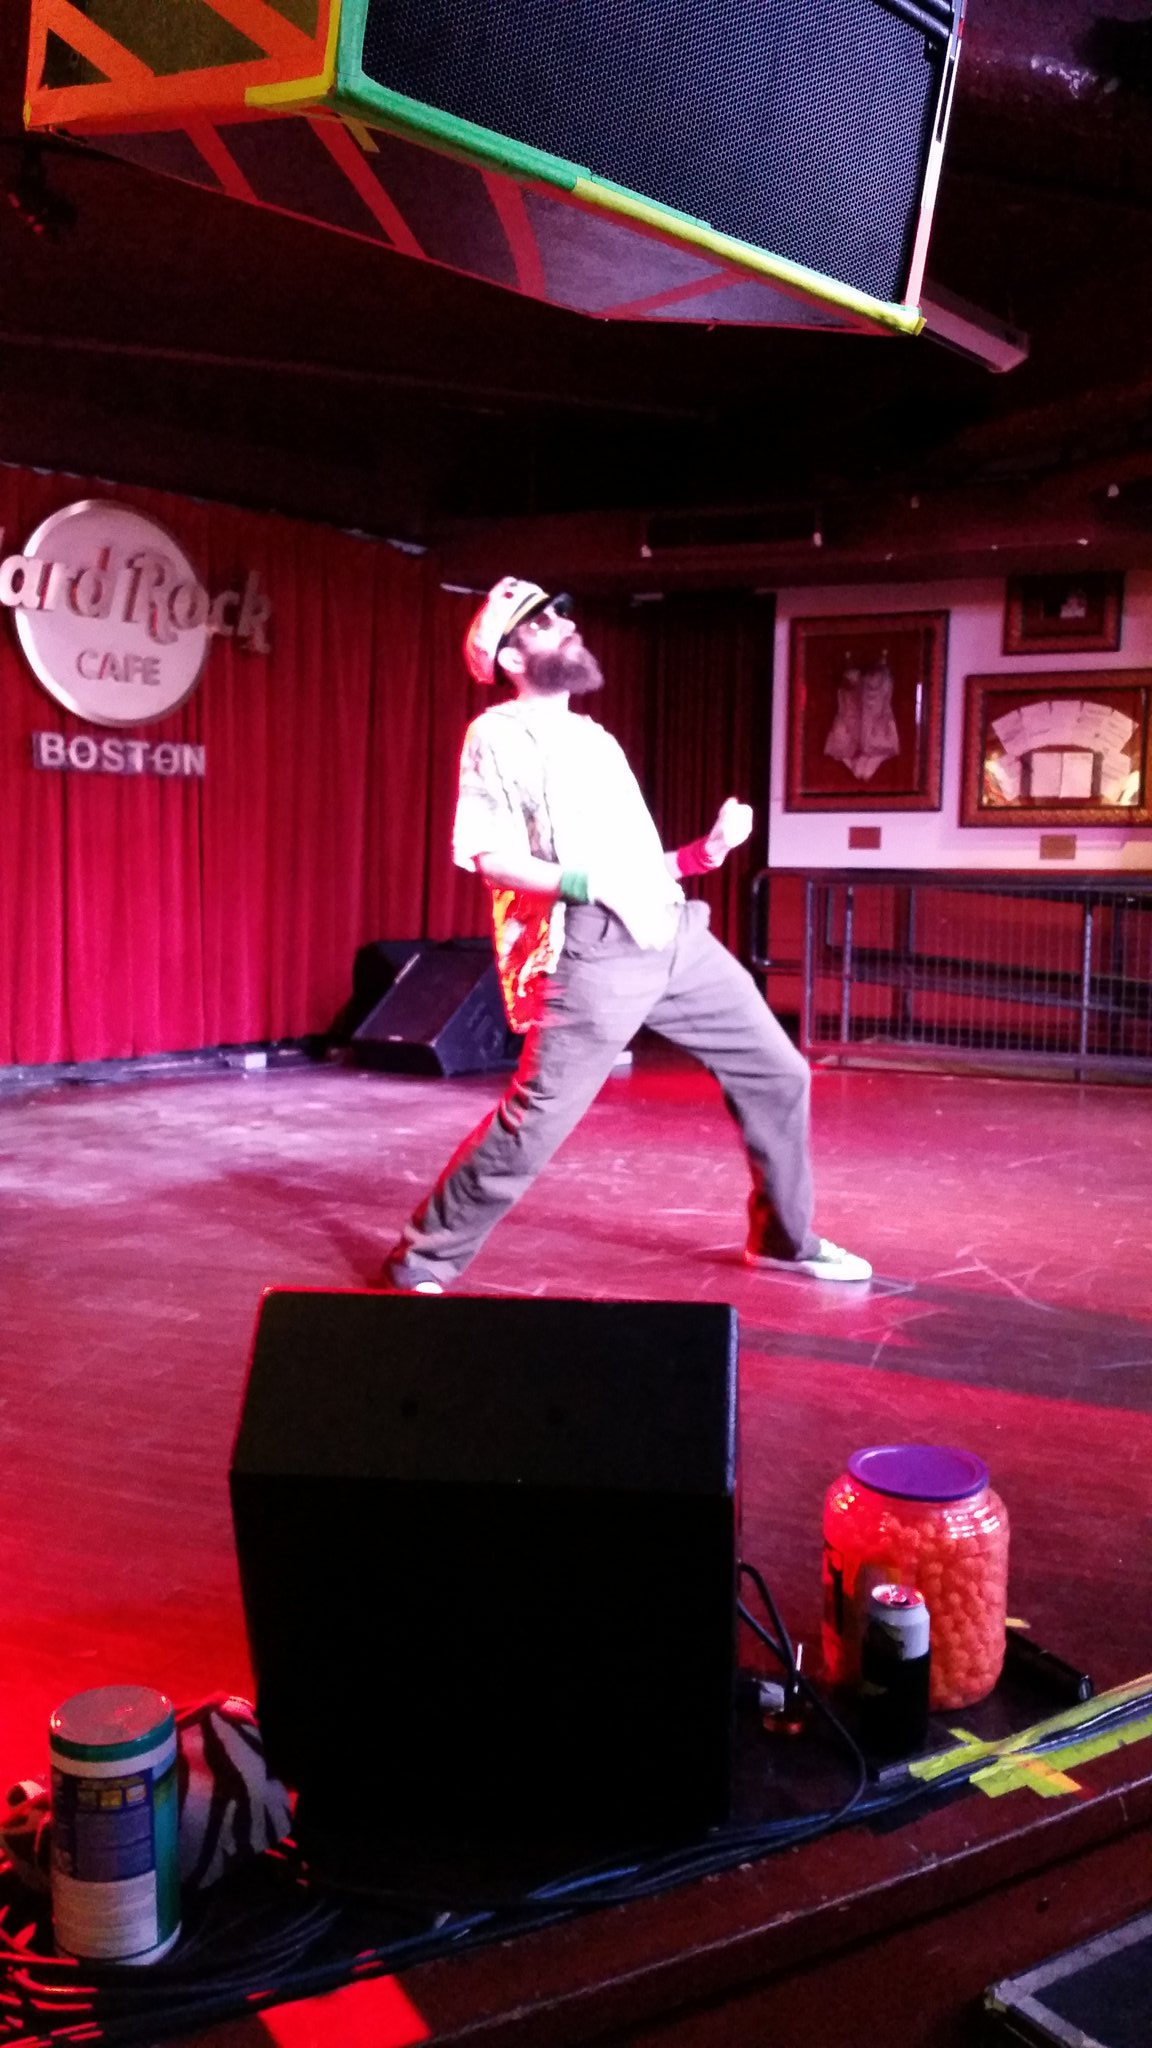 Airhab just did every song he has ever performed as an intro. That's a lot. #usairguitar https://t.co/r7uV8mw4CP